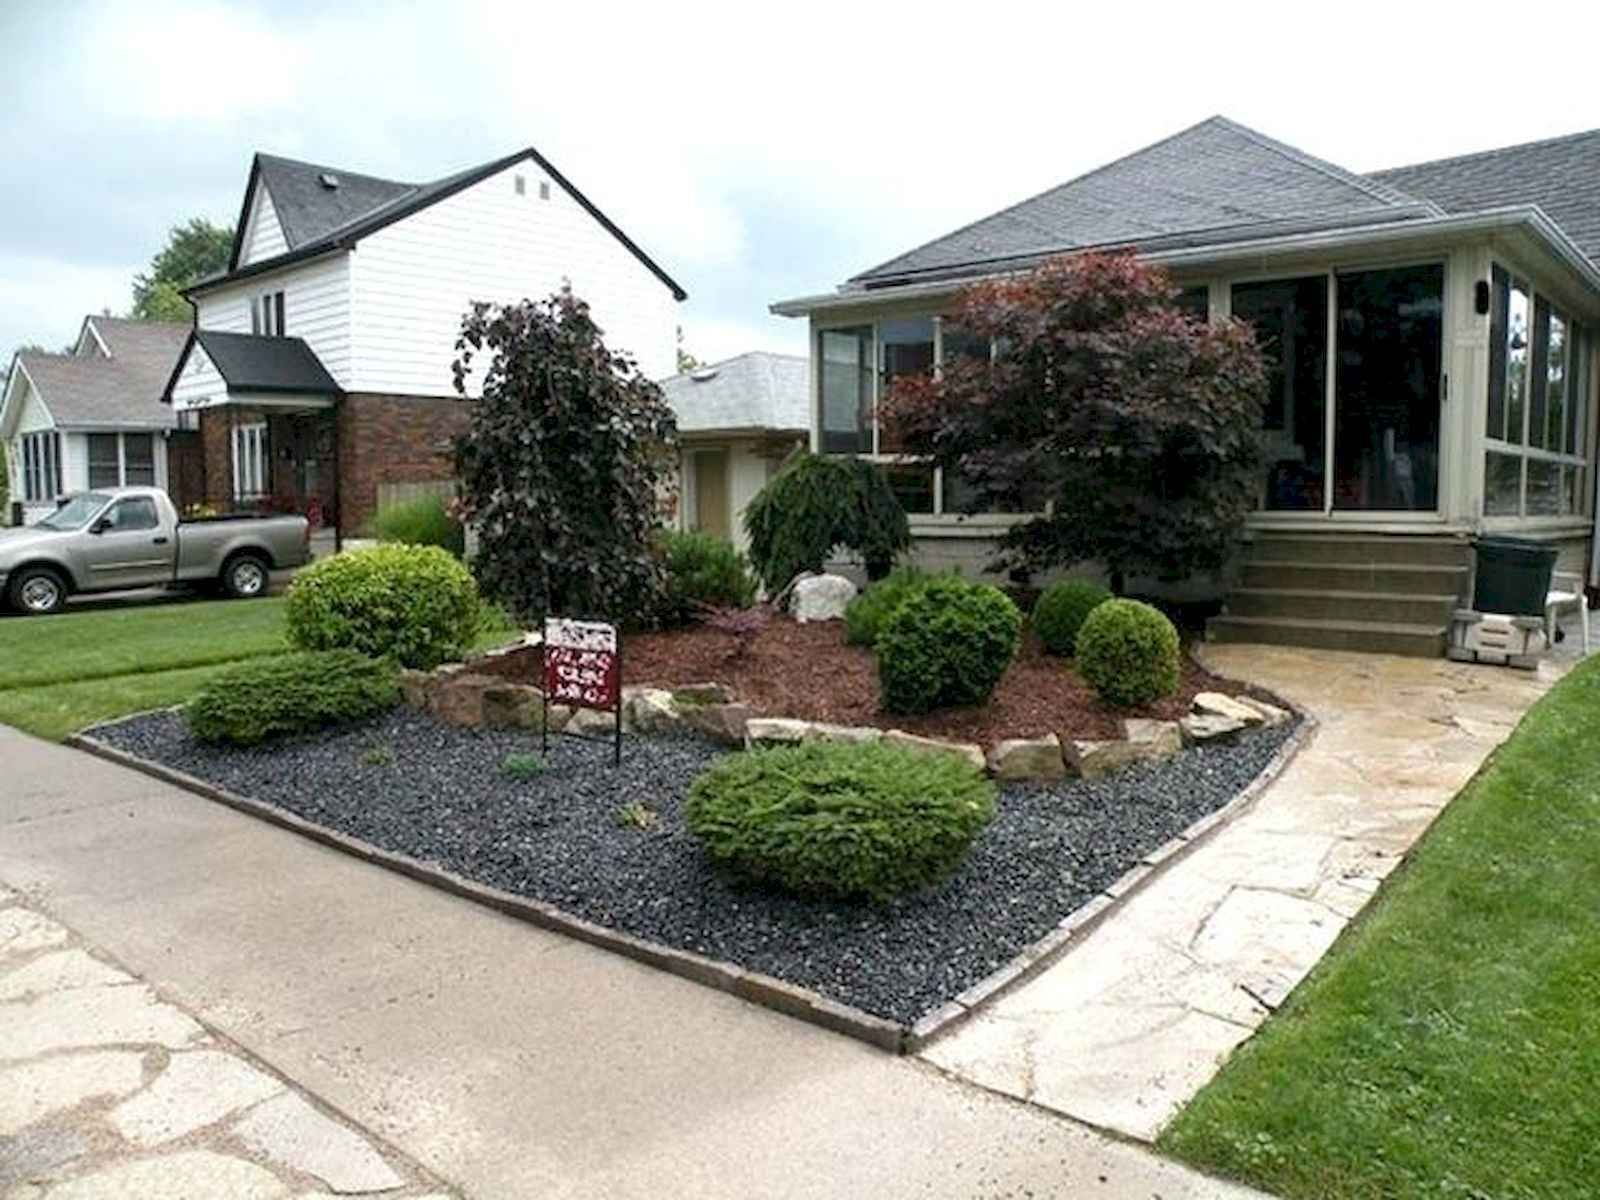 60 Stunning Low Maintenance Front Yard Landscaping Design Ideas And Remodel For Summer Small Front Yard Landscaping Front Yard Landscaping Design Small Yard Landscaping